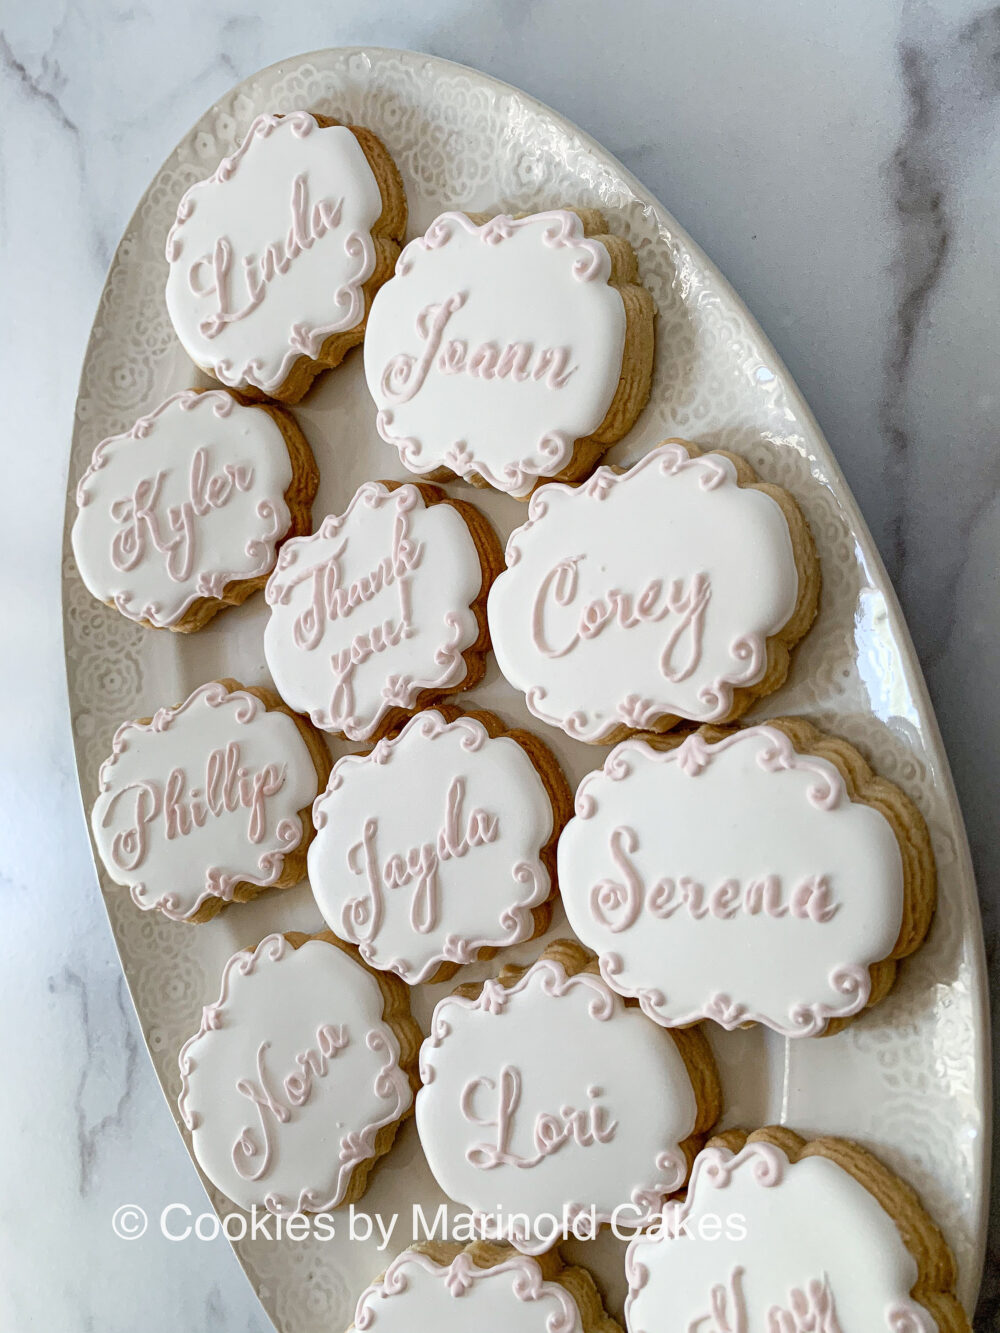 """Table Place Card Cookies - Dozen 3"""" Cookie Favors For Weddings, Showers, & Birthdays"""